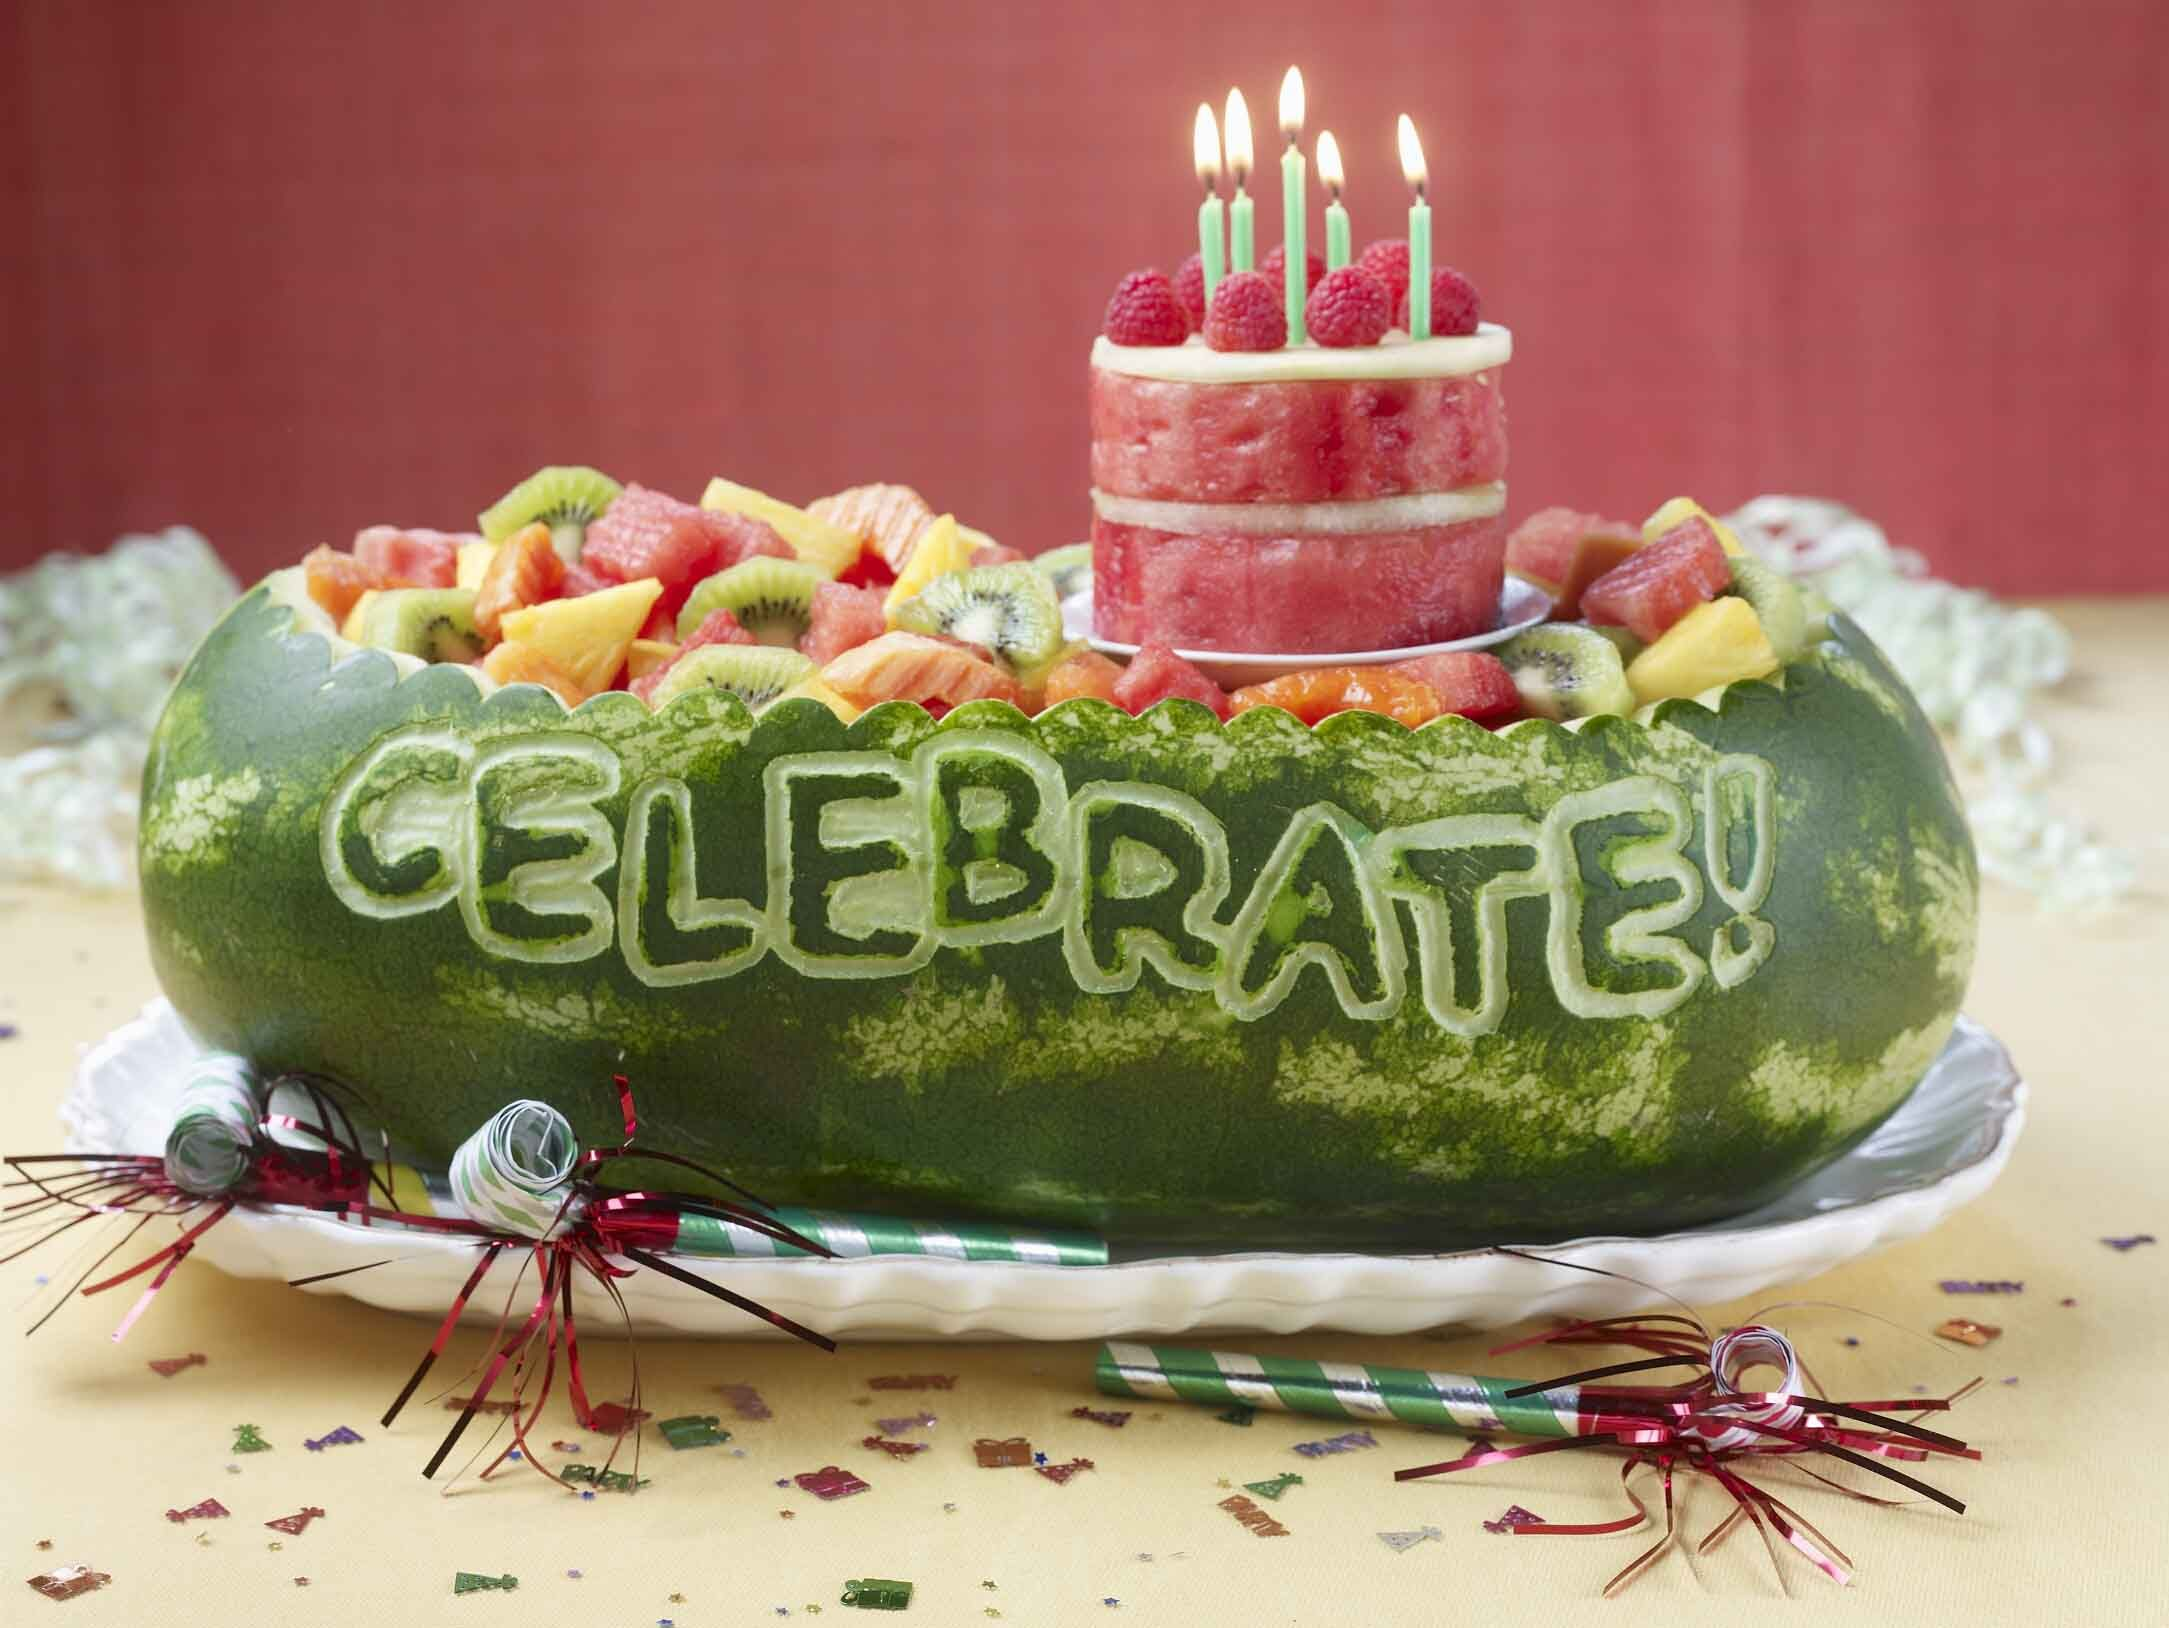 Fun watermelon carvings for fourth of july th of july pinterest